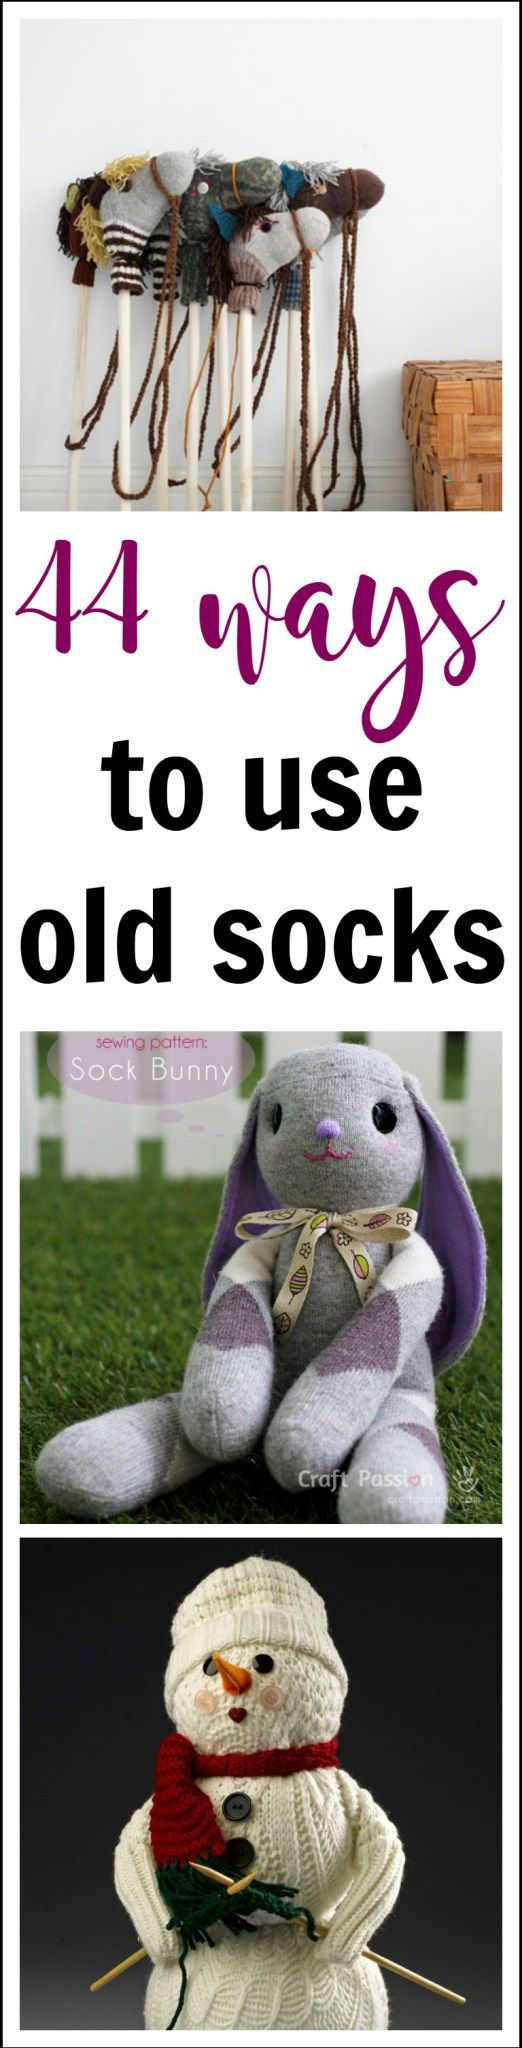 44 ways to use old socks - Domesblissity